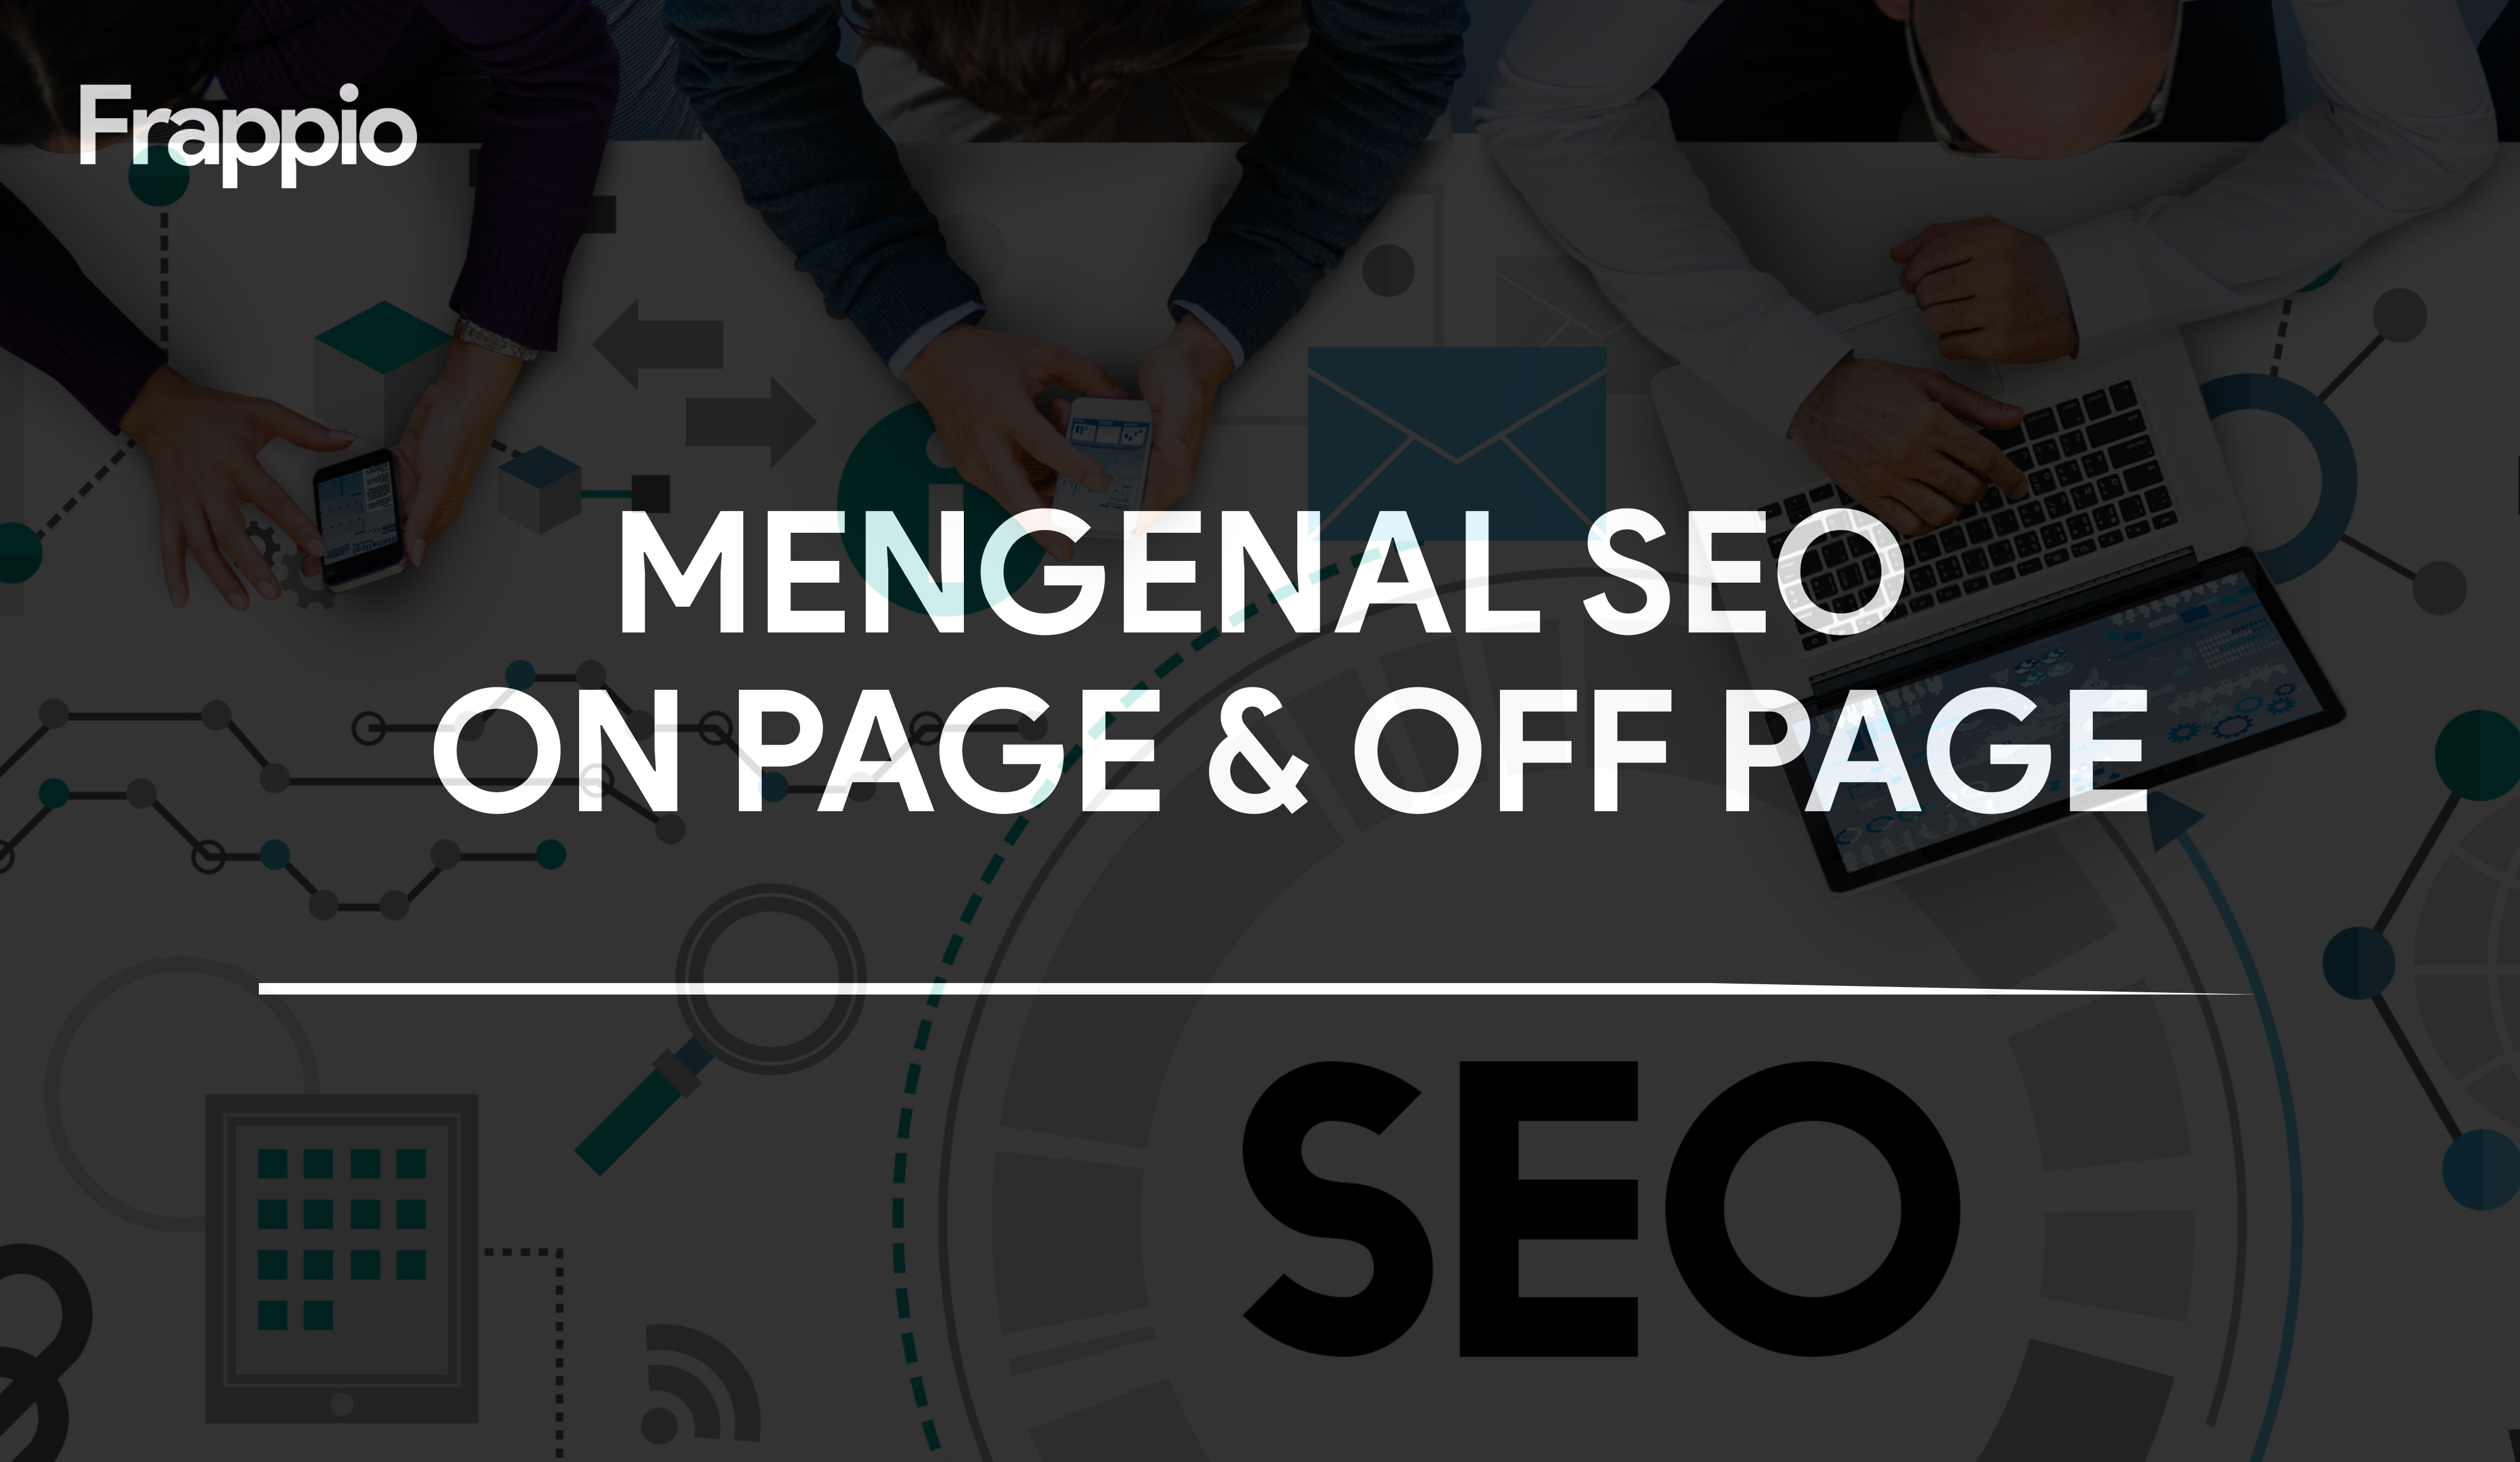 Mengenal SEO On Page dan Off Page